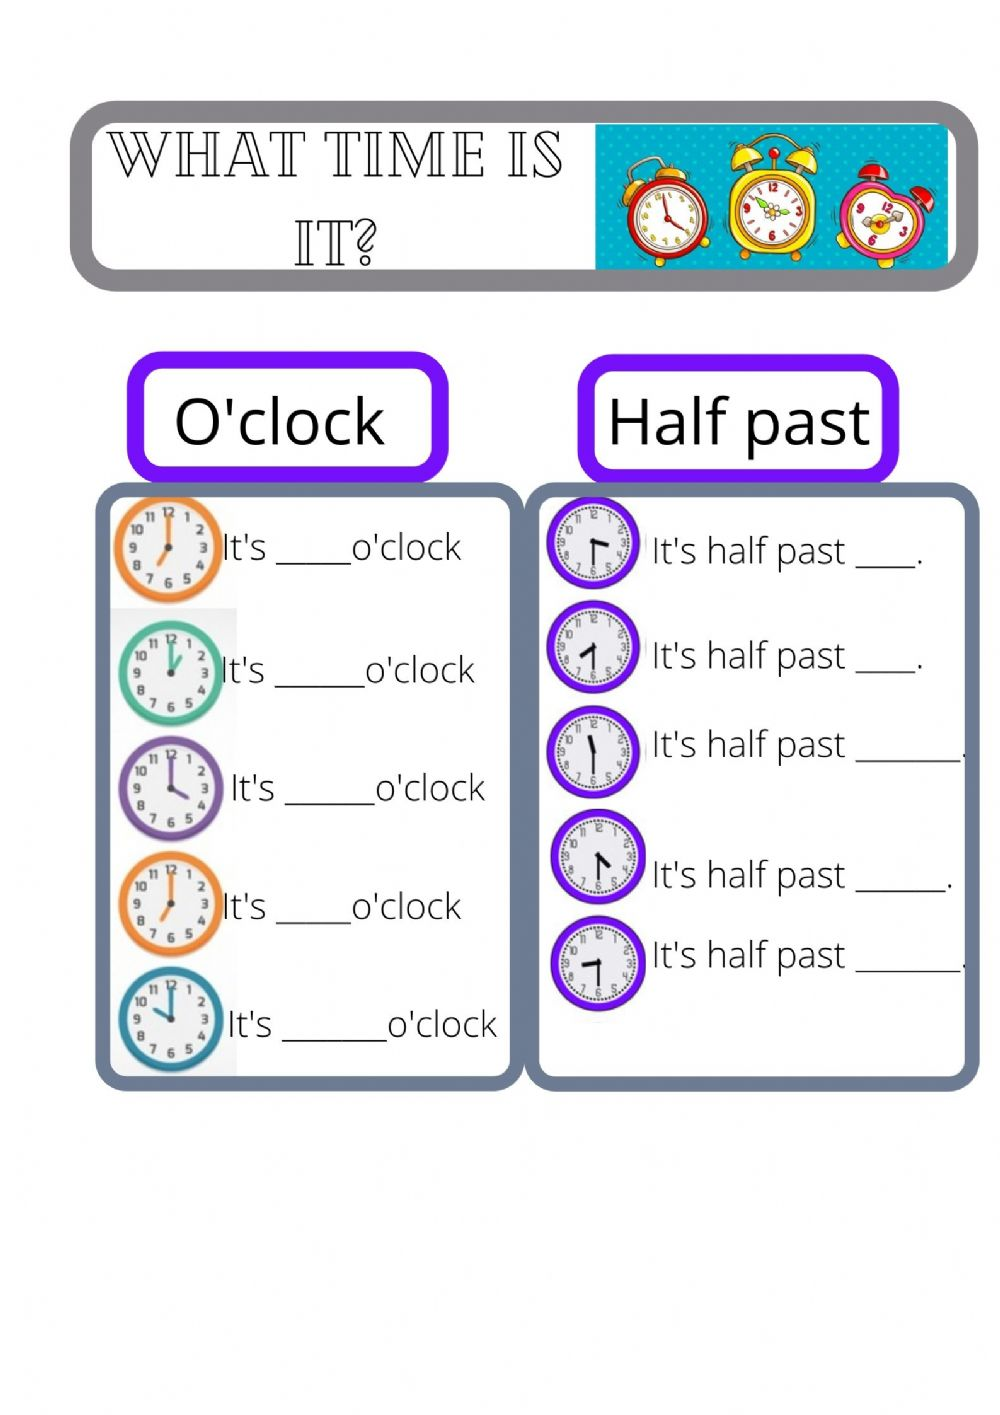 hight resolution of Time activity for year 3 / grade 3/ elementary level